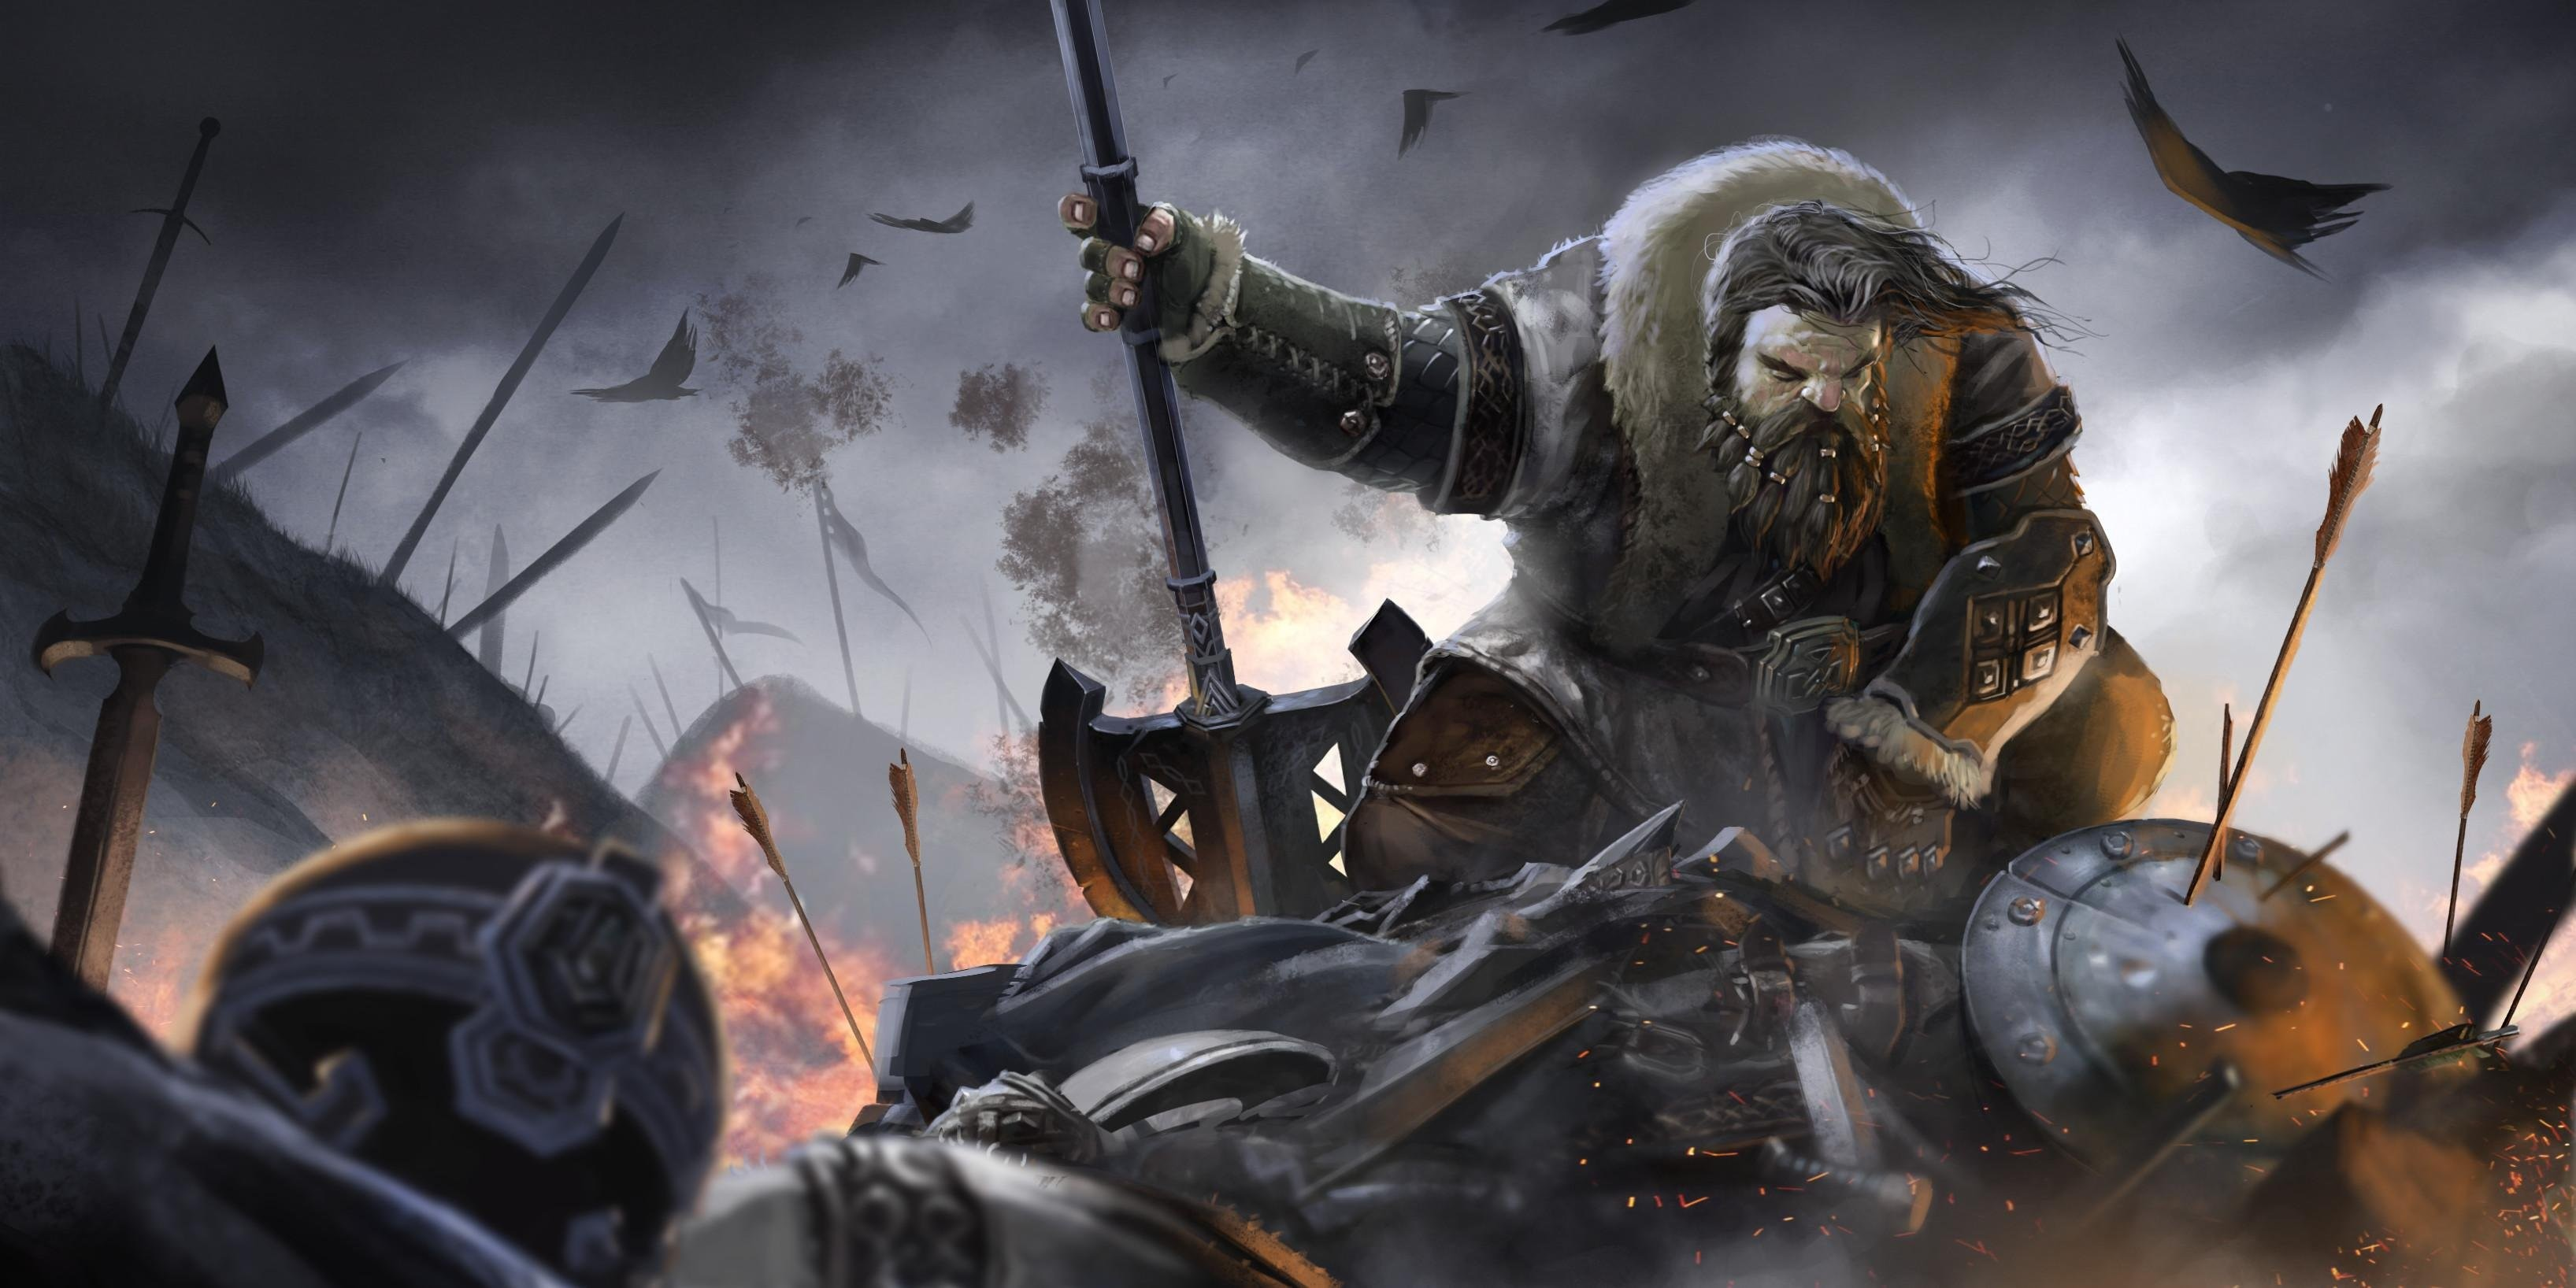 Res: 3271x1636, Dwarf Wallpapers 13 - 3271 X 1636